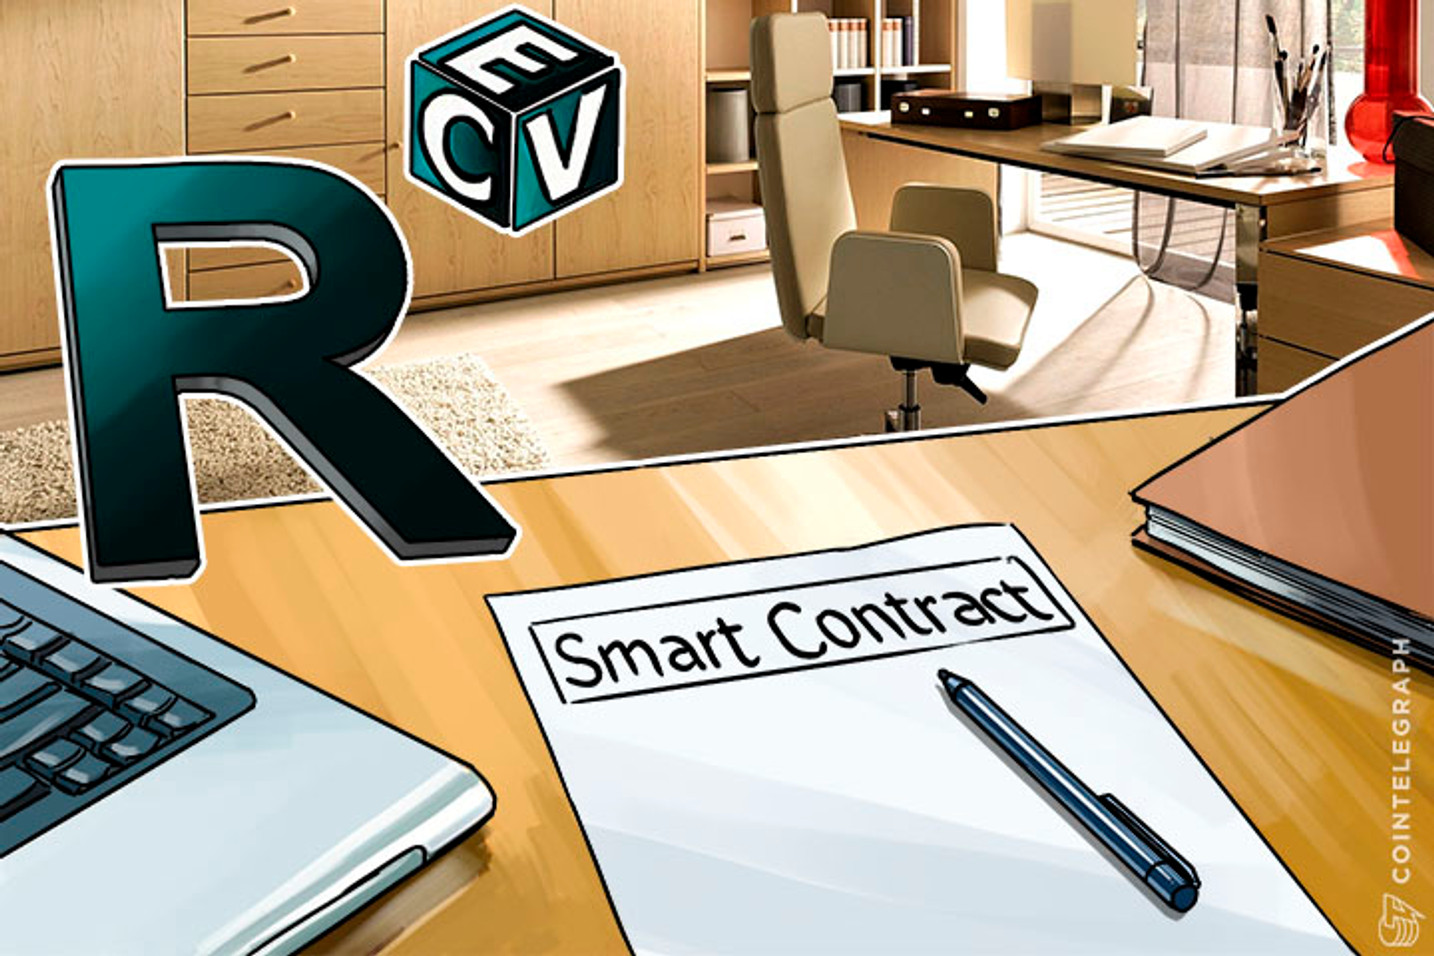 R3-led Group Investigates Smart Contract Templates for Blockchain, Aims At Making Them Admissible in Courts